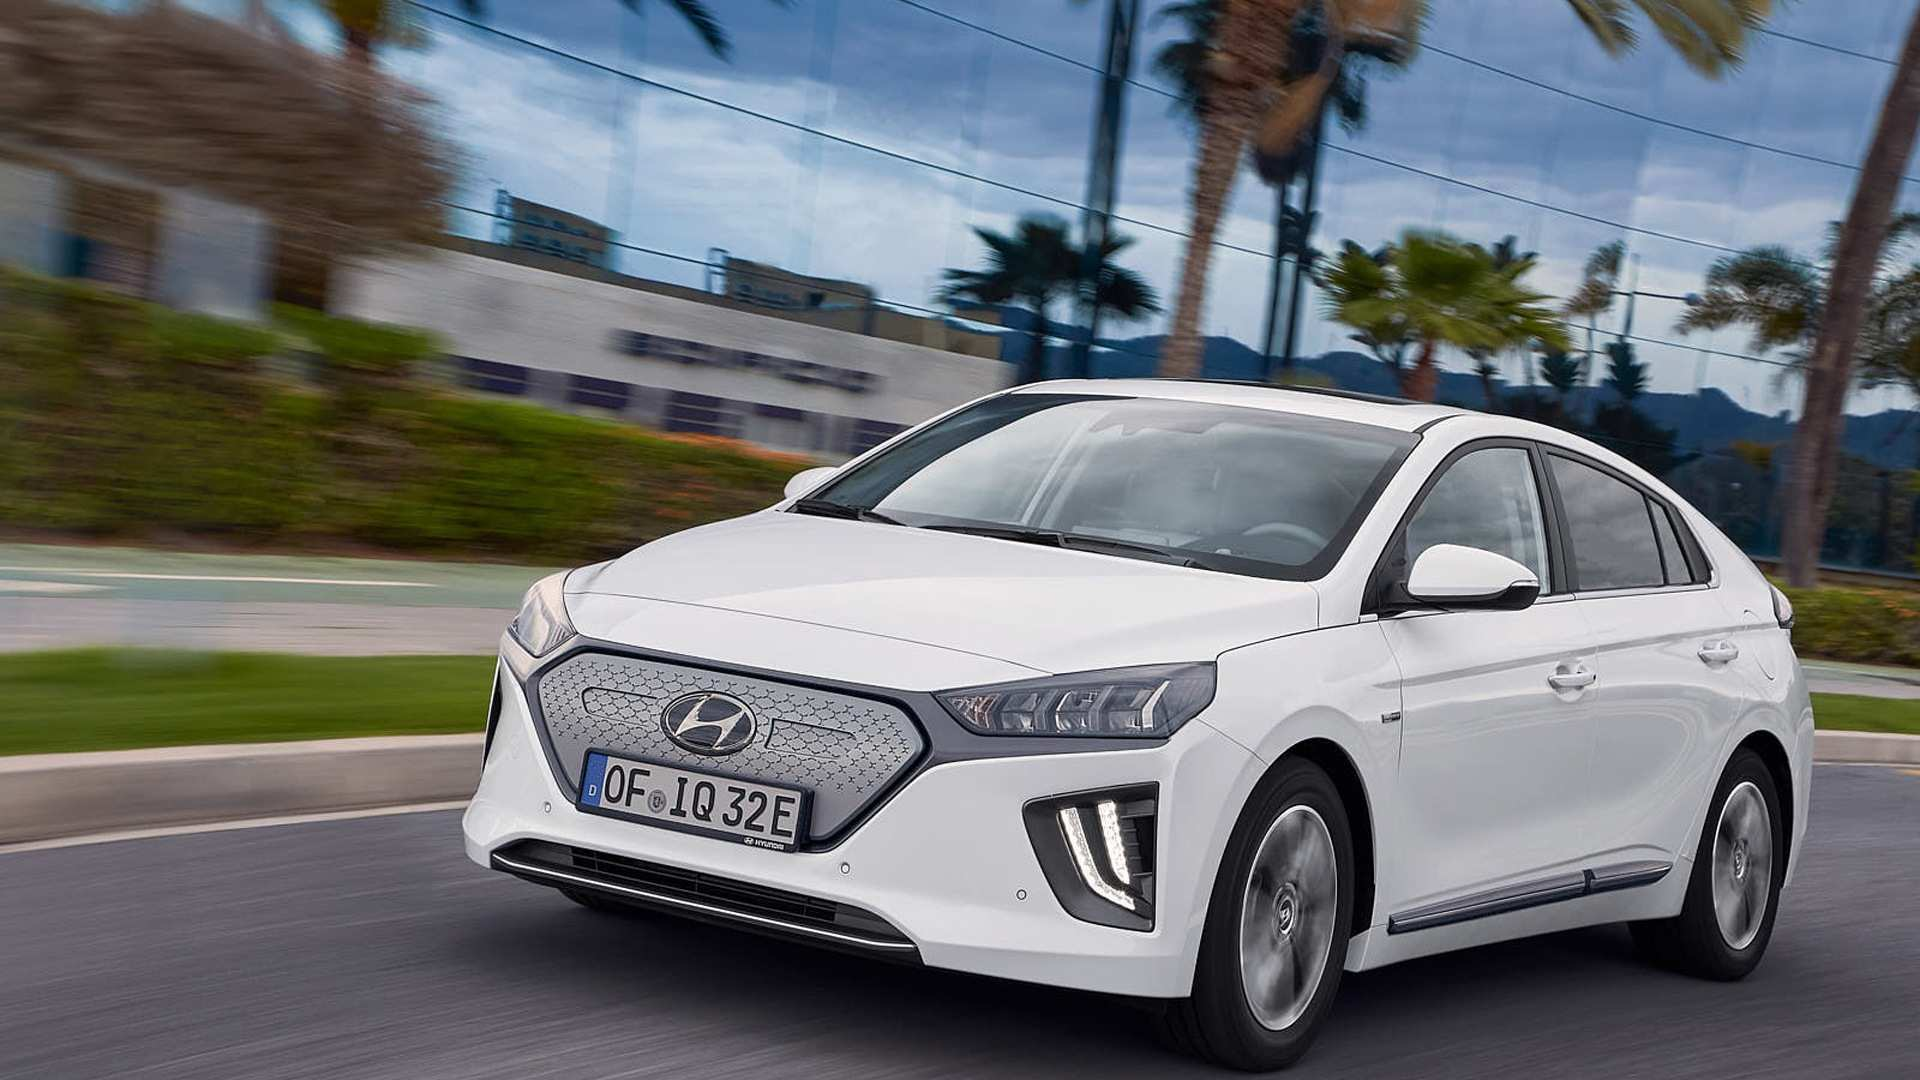 58 All New Hyundai Electric Car 2020 Spy Shoot